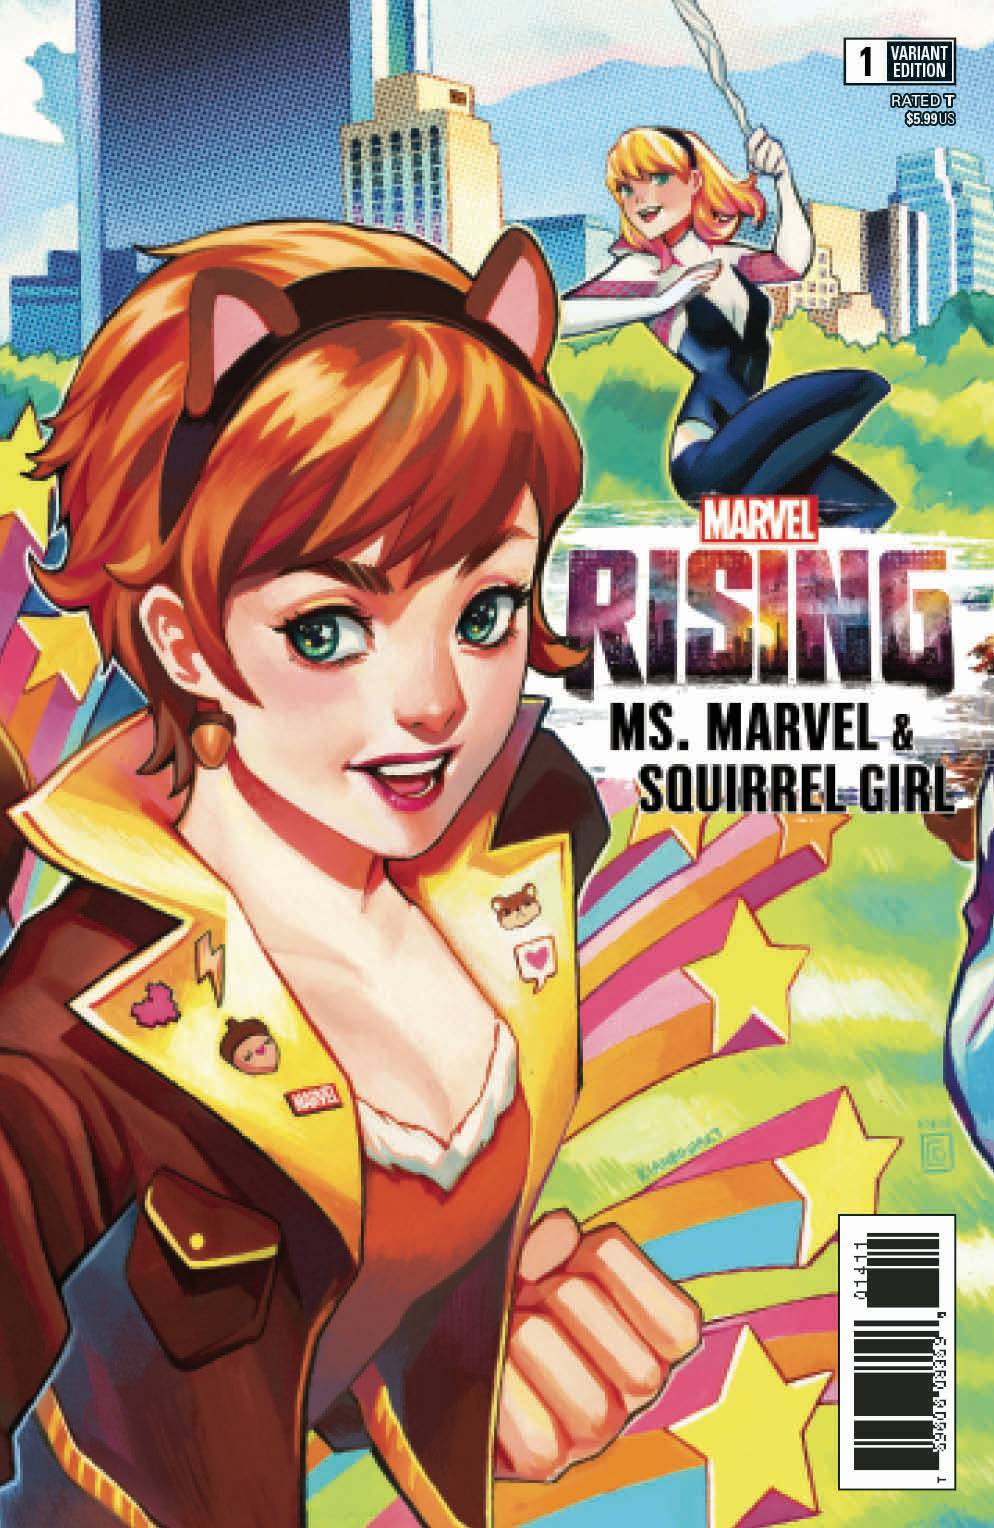 MARVEL RISING MS MARVEL SQUIRREL GIRL #1 CONNECTING VAR (08/01/2018)